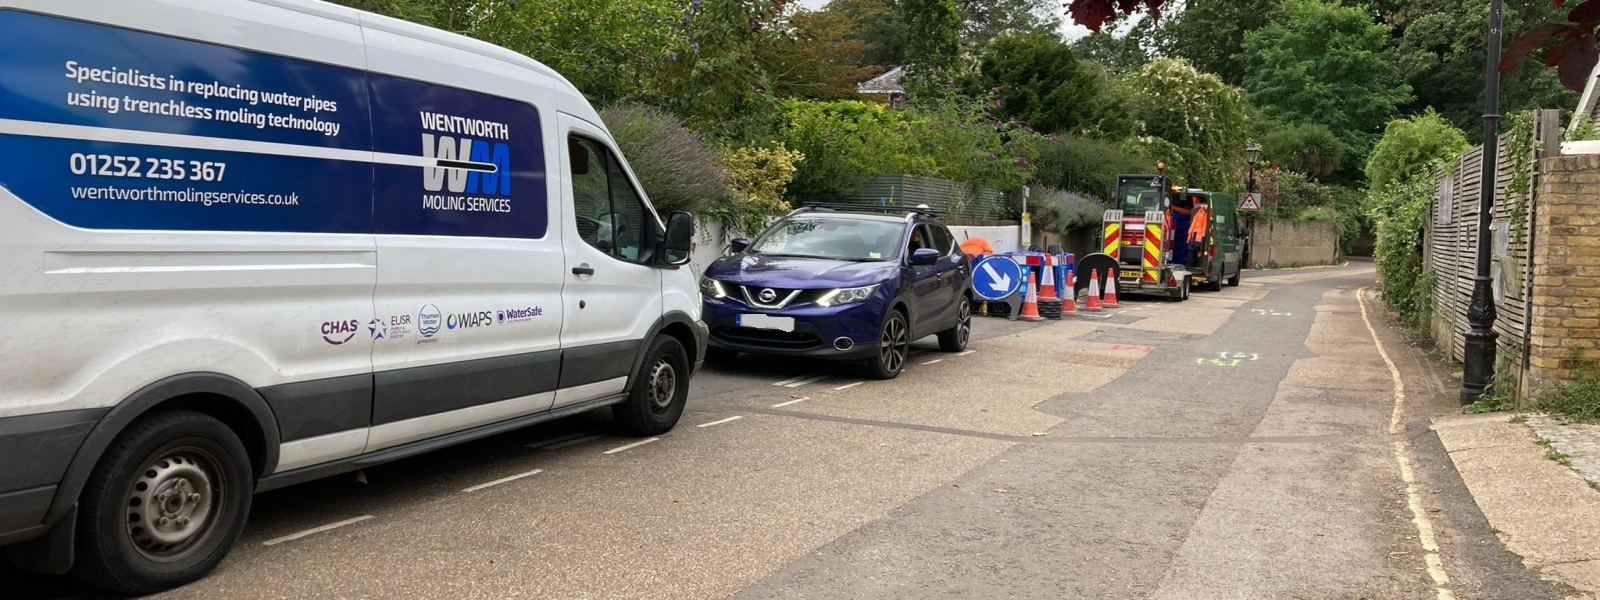 Domestic and Commercial Groundworkers Wentworth Moling Services